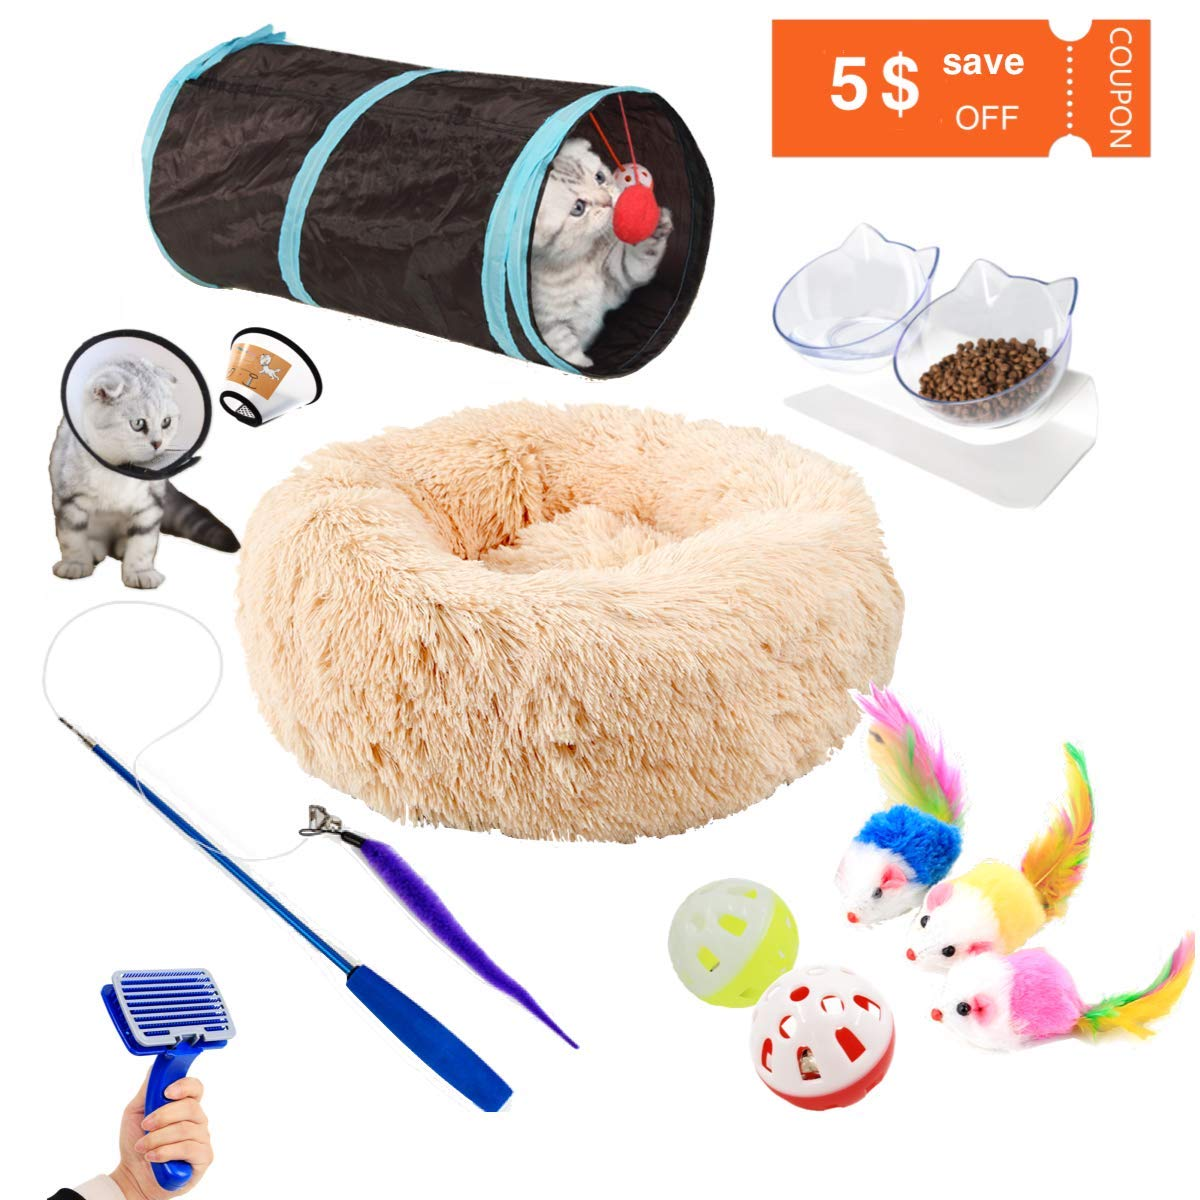 Cat Starter Kit 12PCS Plush Donut Cuddler Cat Bed Double and Tilted Raised Pet Bowls with Cat Tunnel Pet Grooming Brush Cat Feather Teaser Wand Interactive Toy by CLORY